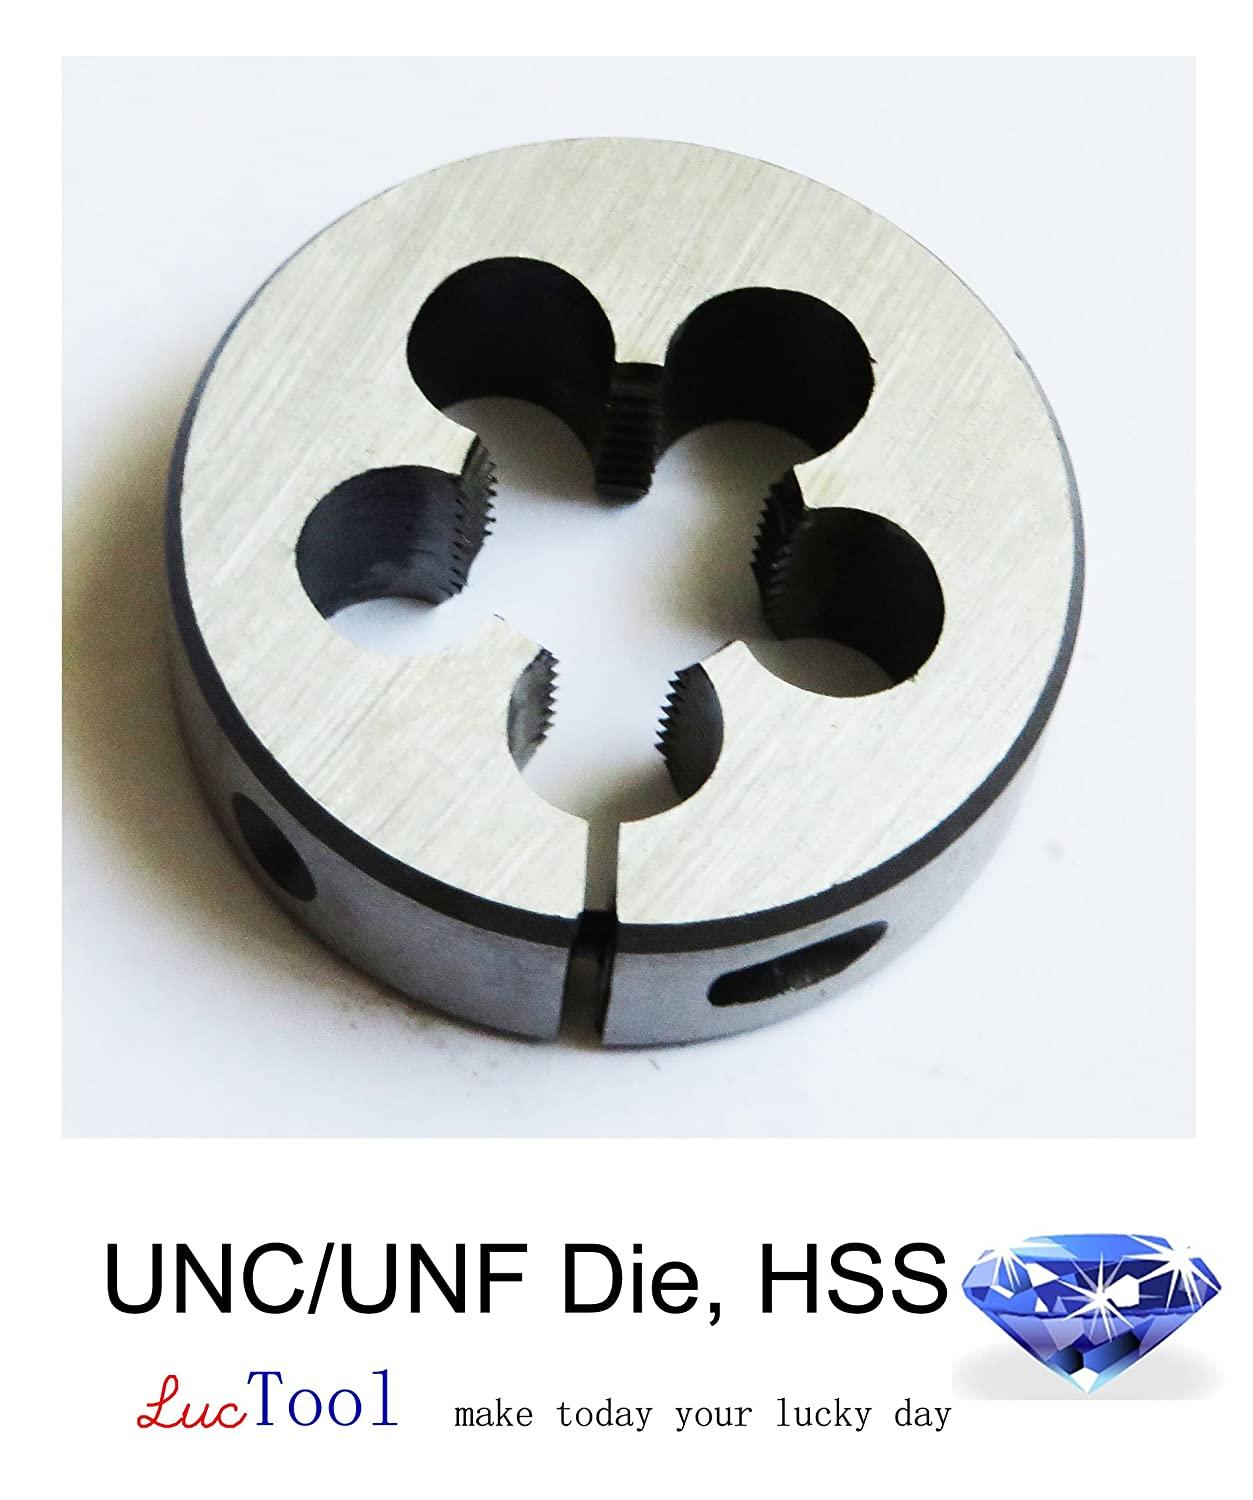 """Luctool Provides Premium Quality Hand Tools for Metal Threading. Luctool 3-48 UNC Die Round Adjustable Split Threading Die 13//16/"""" OD Inch Thread HSS"""